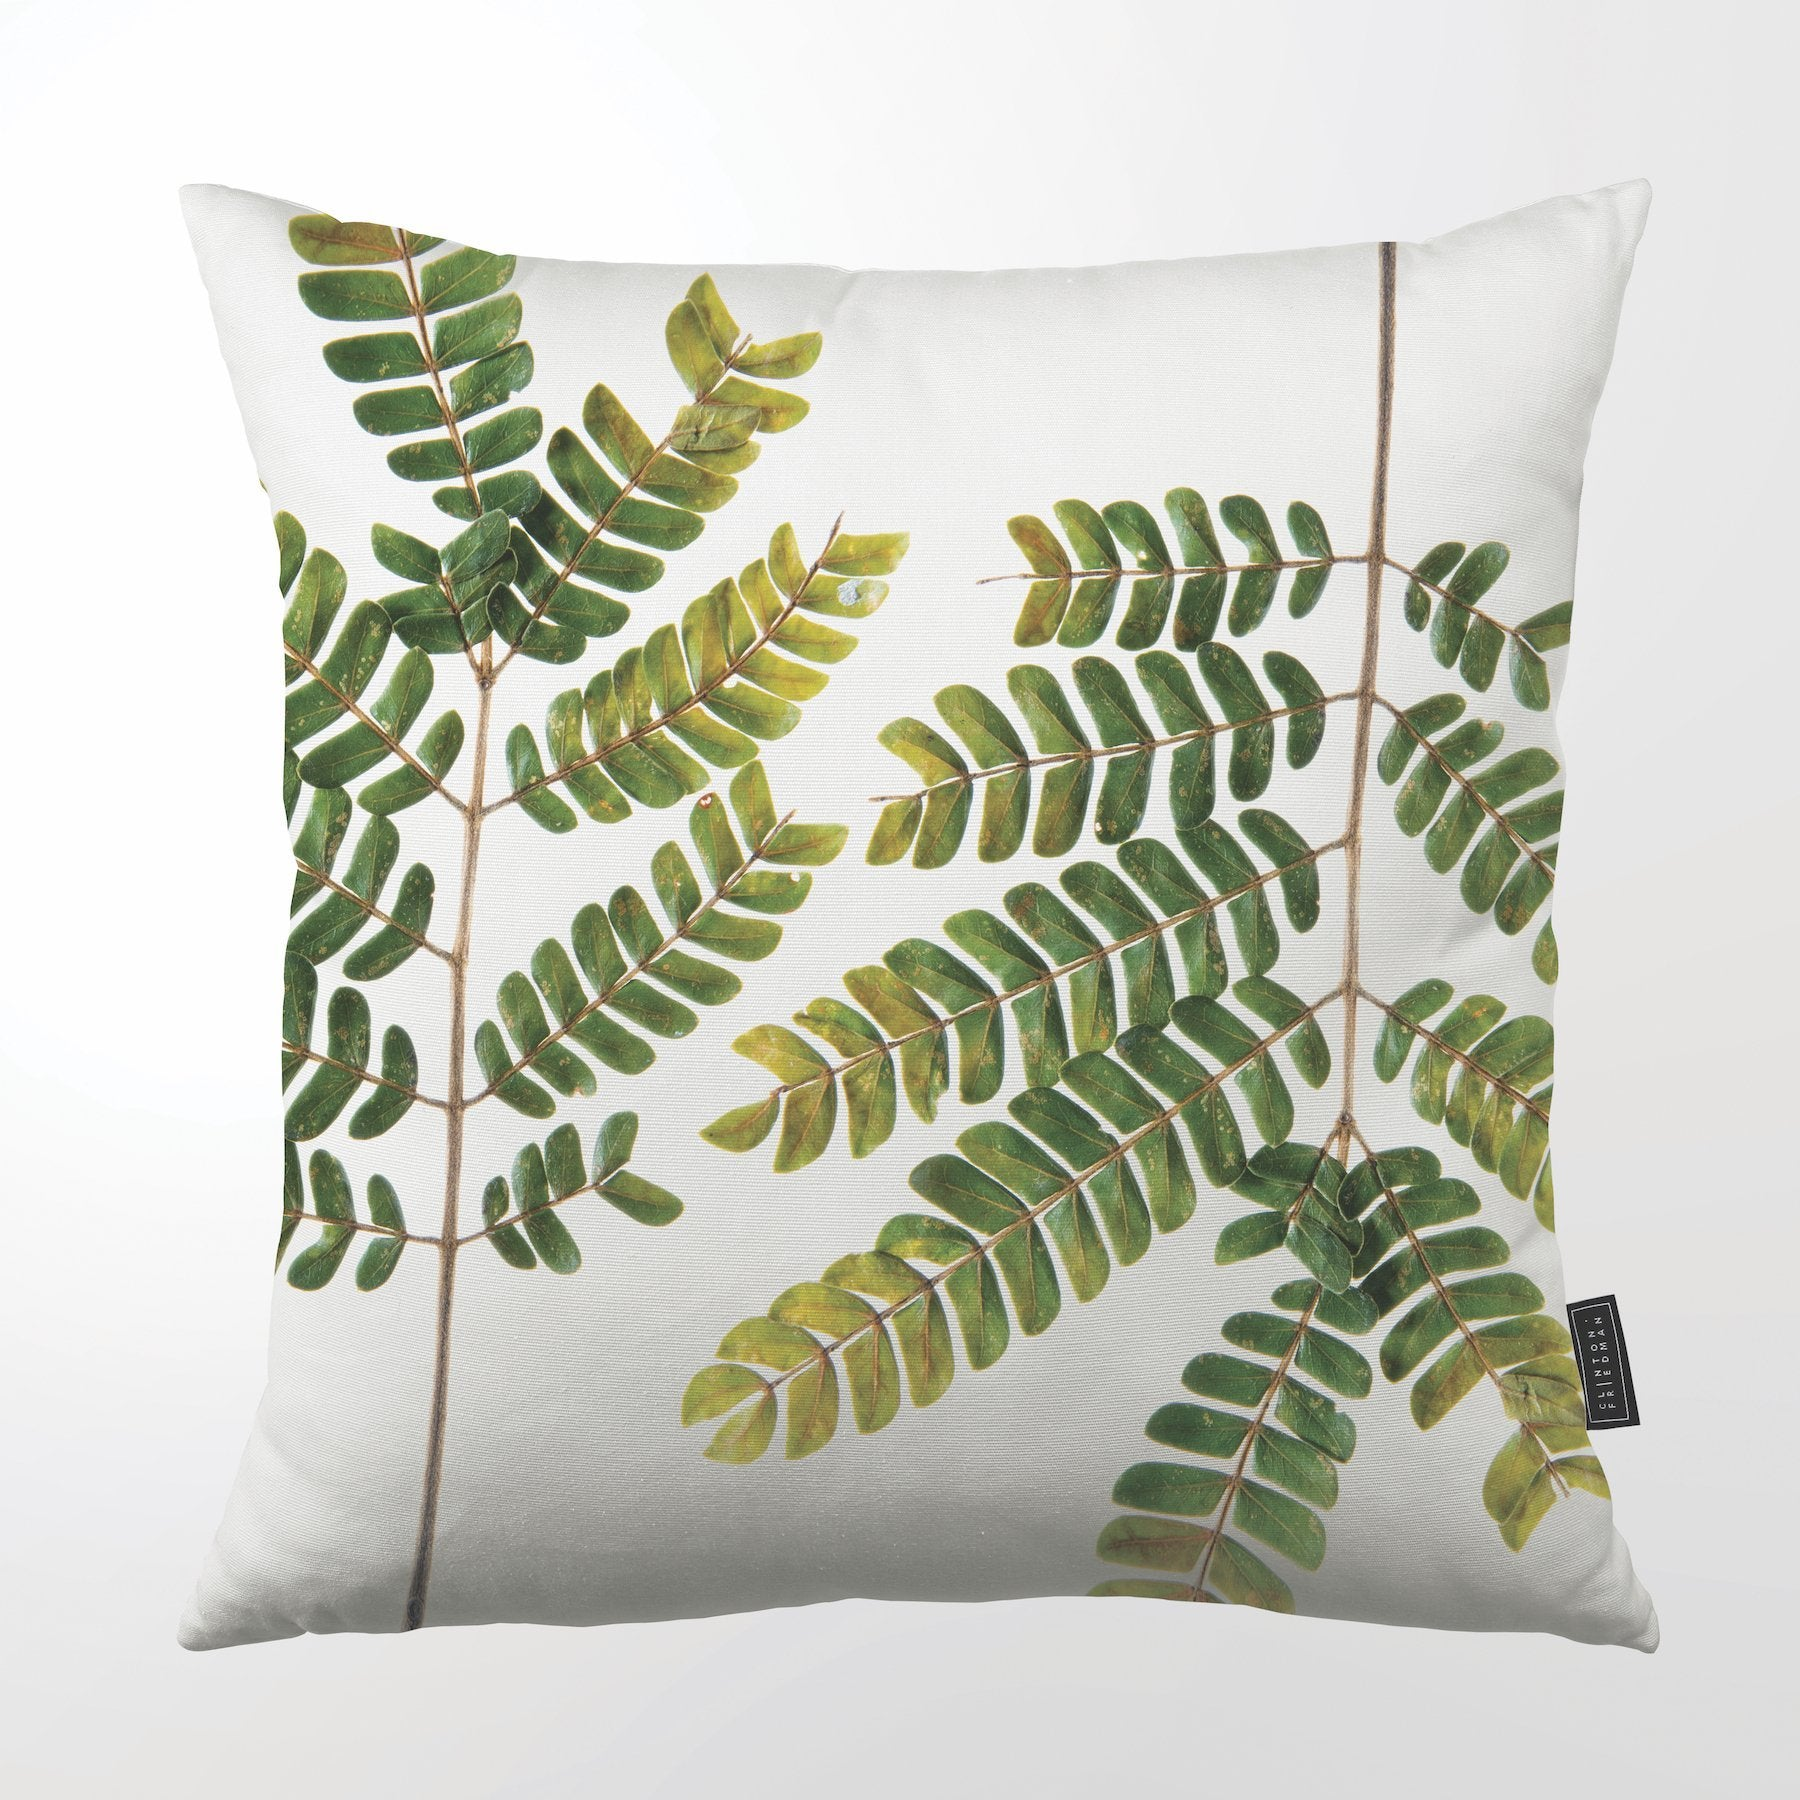 SC600Z ALBIZIA BRANCH THROW PILLOW CLINTON FRIEDMAN NEW YORK USA